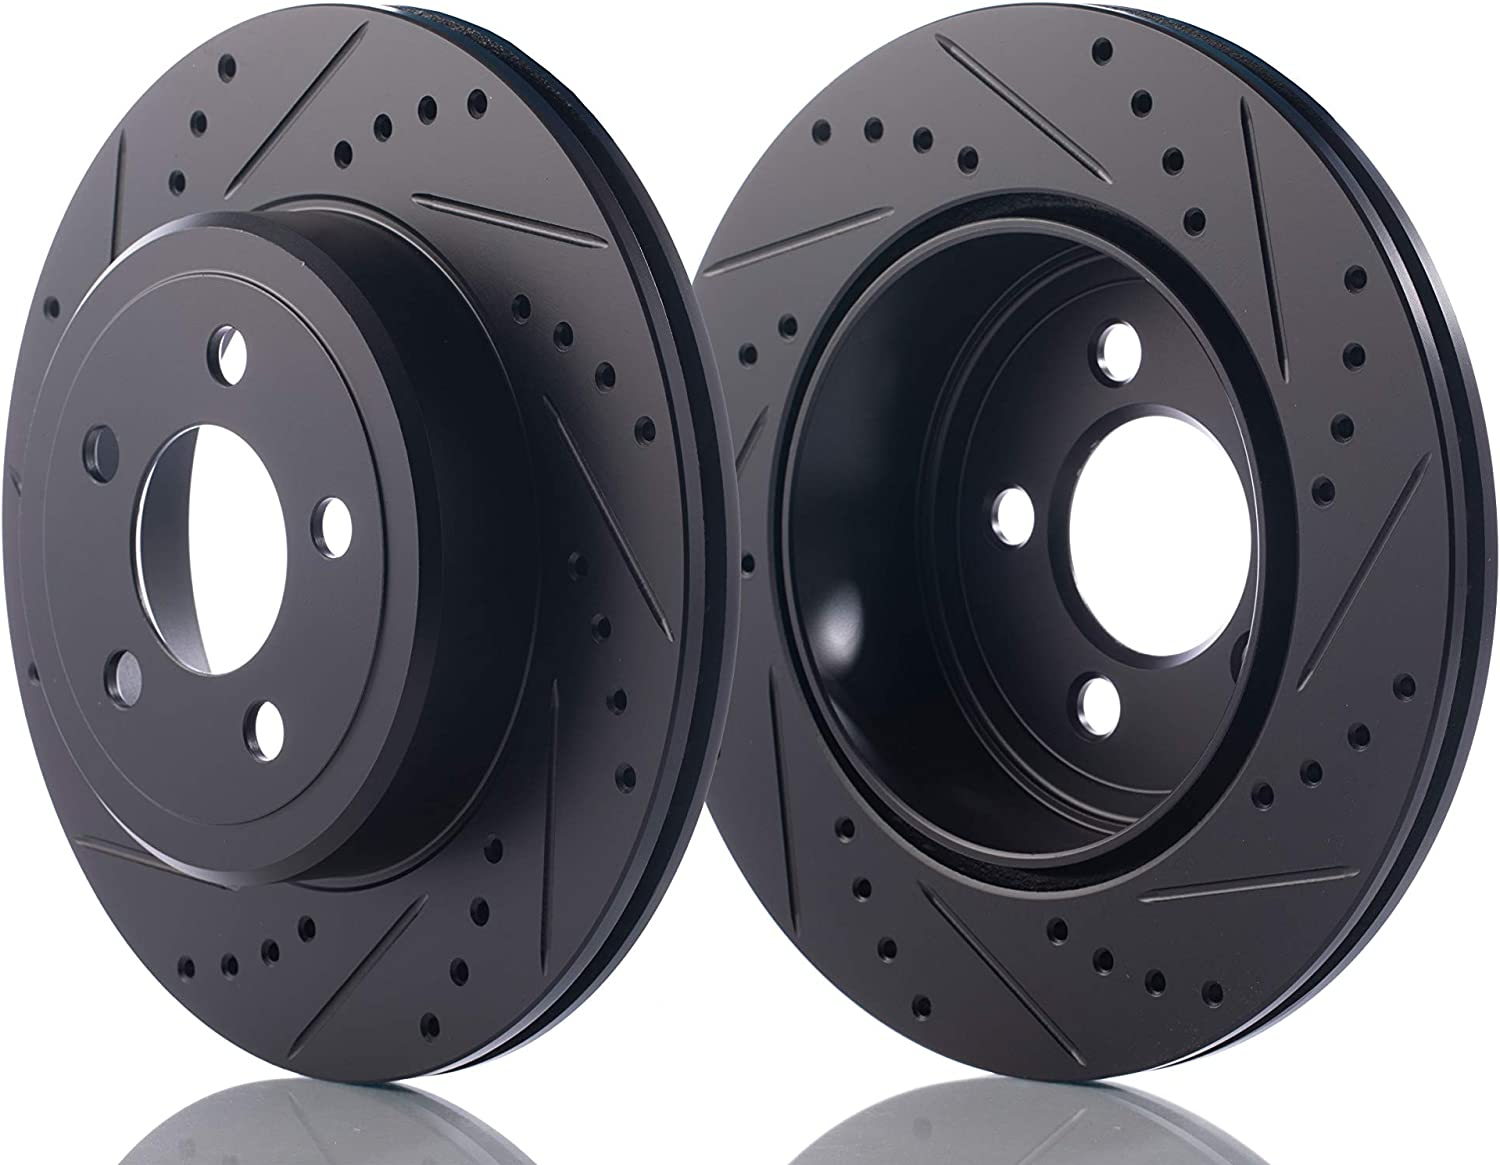 I35 2002-2004 Maxima 1994-2003 Perfit Liner Rear Drilled and Slotted Pair Disc Brake Rotor Compatible With INFINITI//NISSAN I30 1996-2001